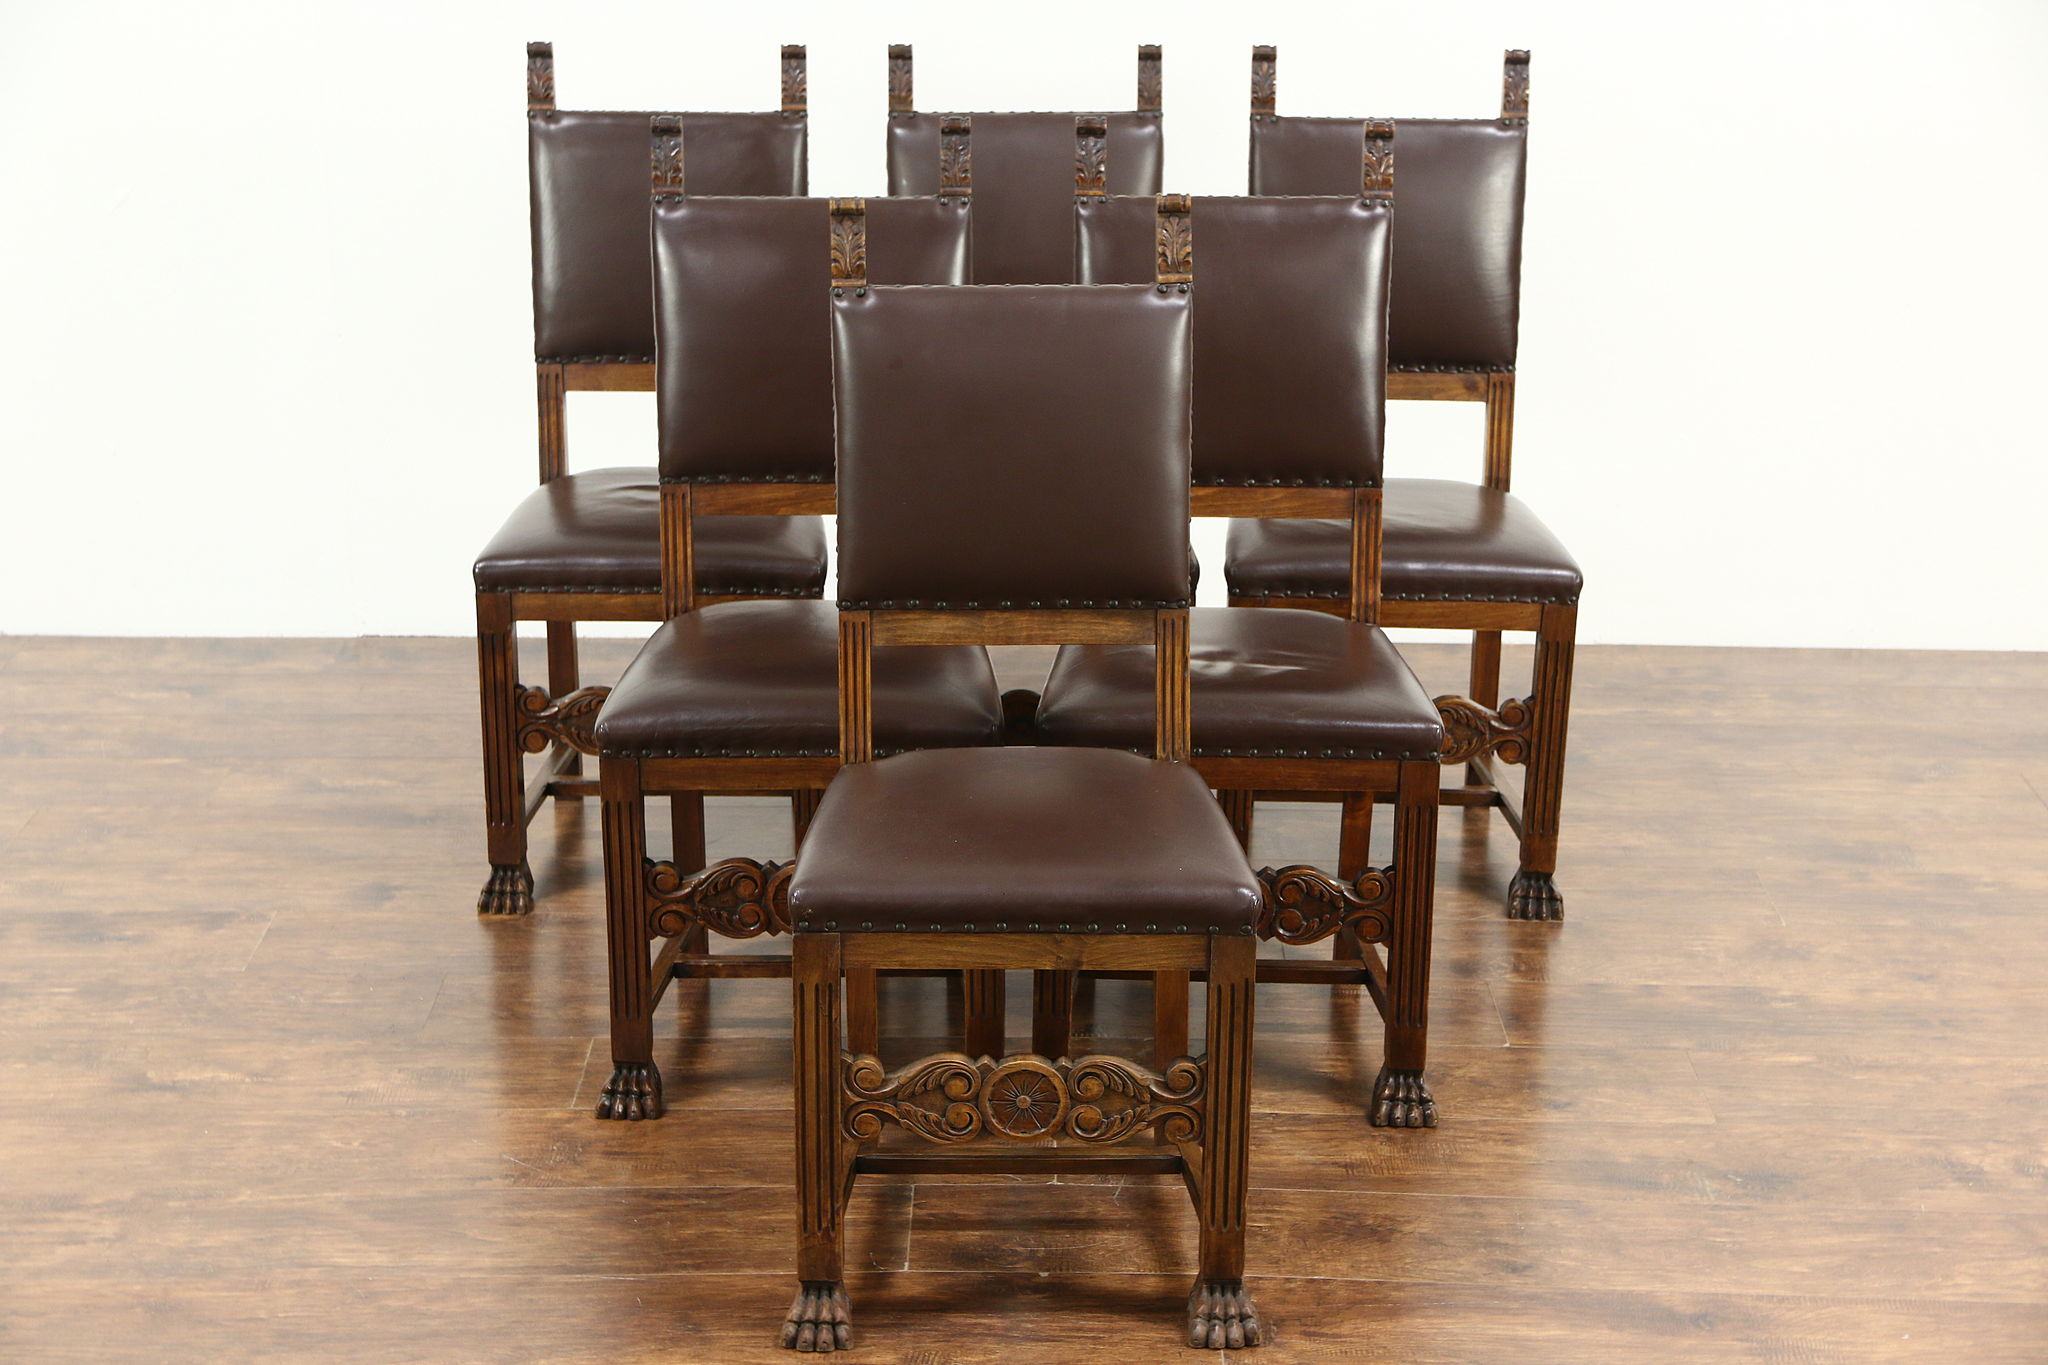 Charmant Italian Renaissance 1900 Antique Set Of 6 Dining Chairs, Leather Upholstery